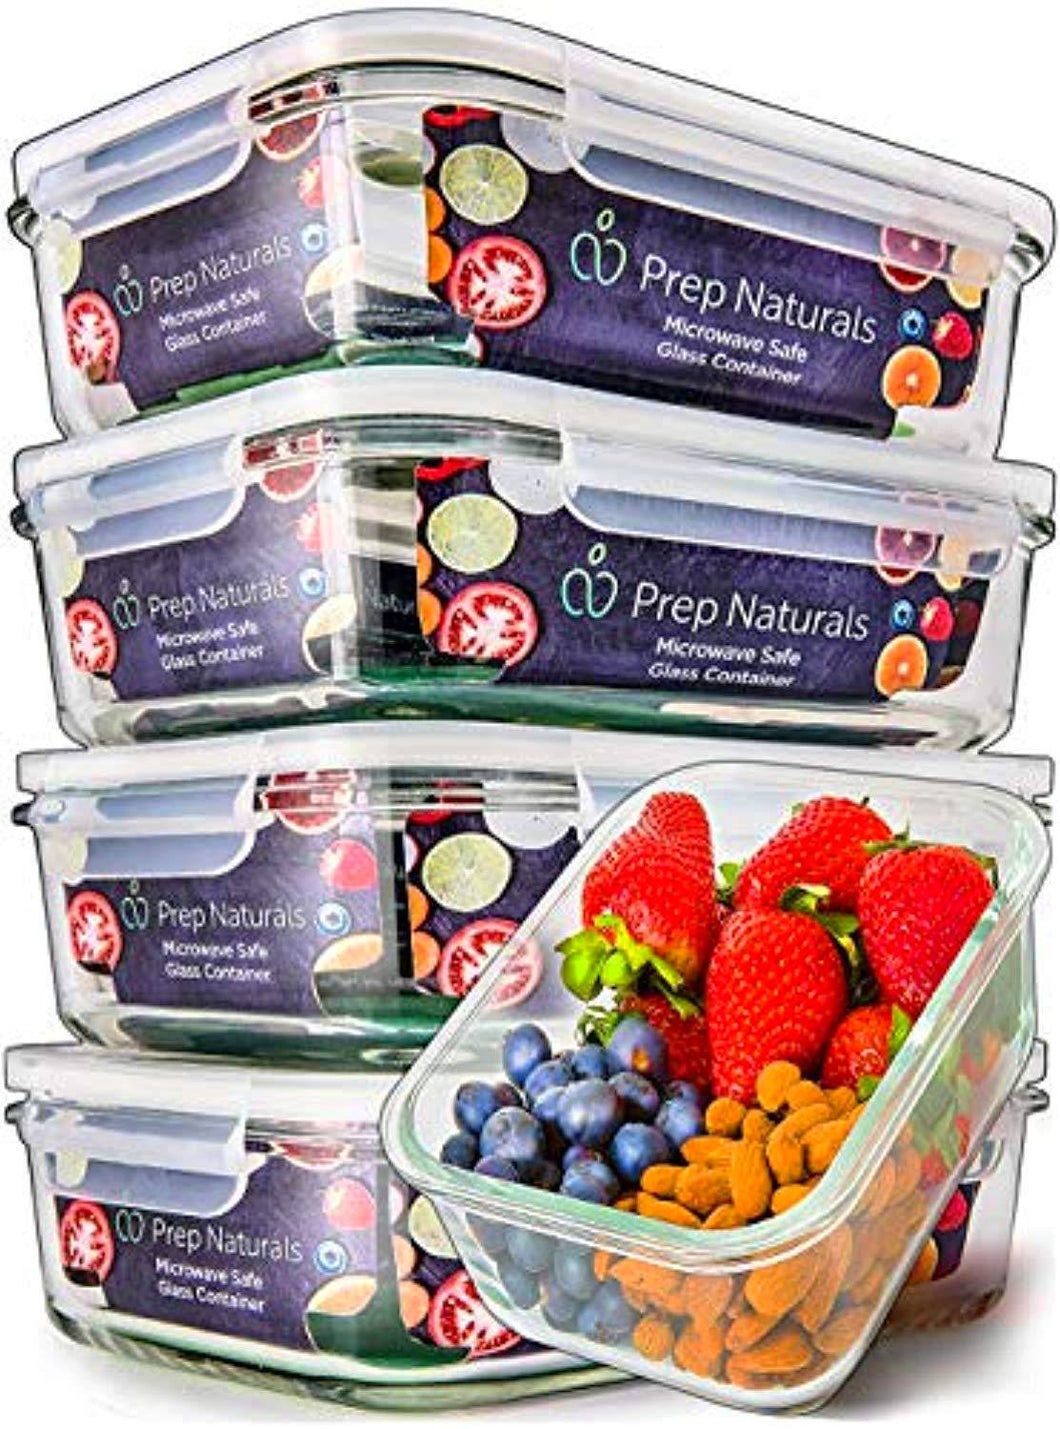 5-Pack 30oz Glass Meal Prep Containers